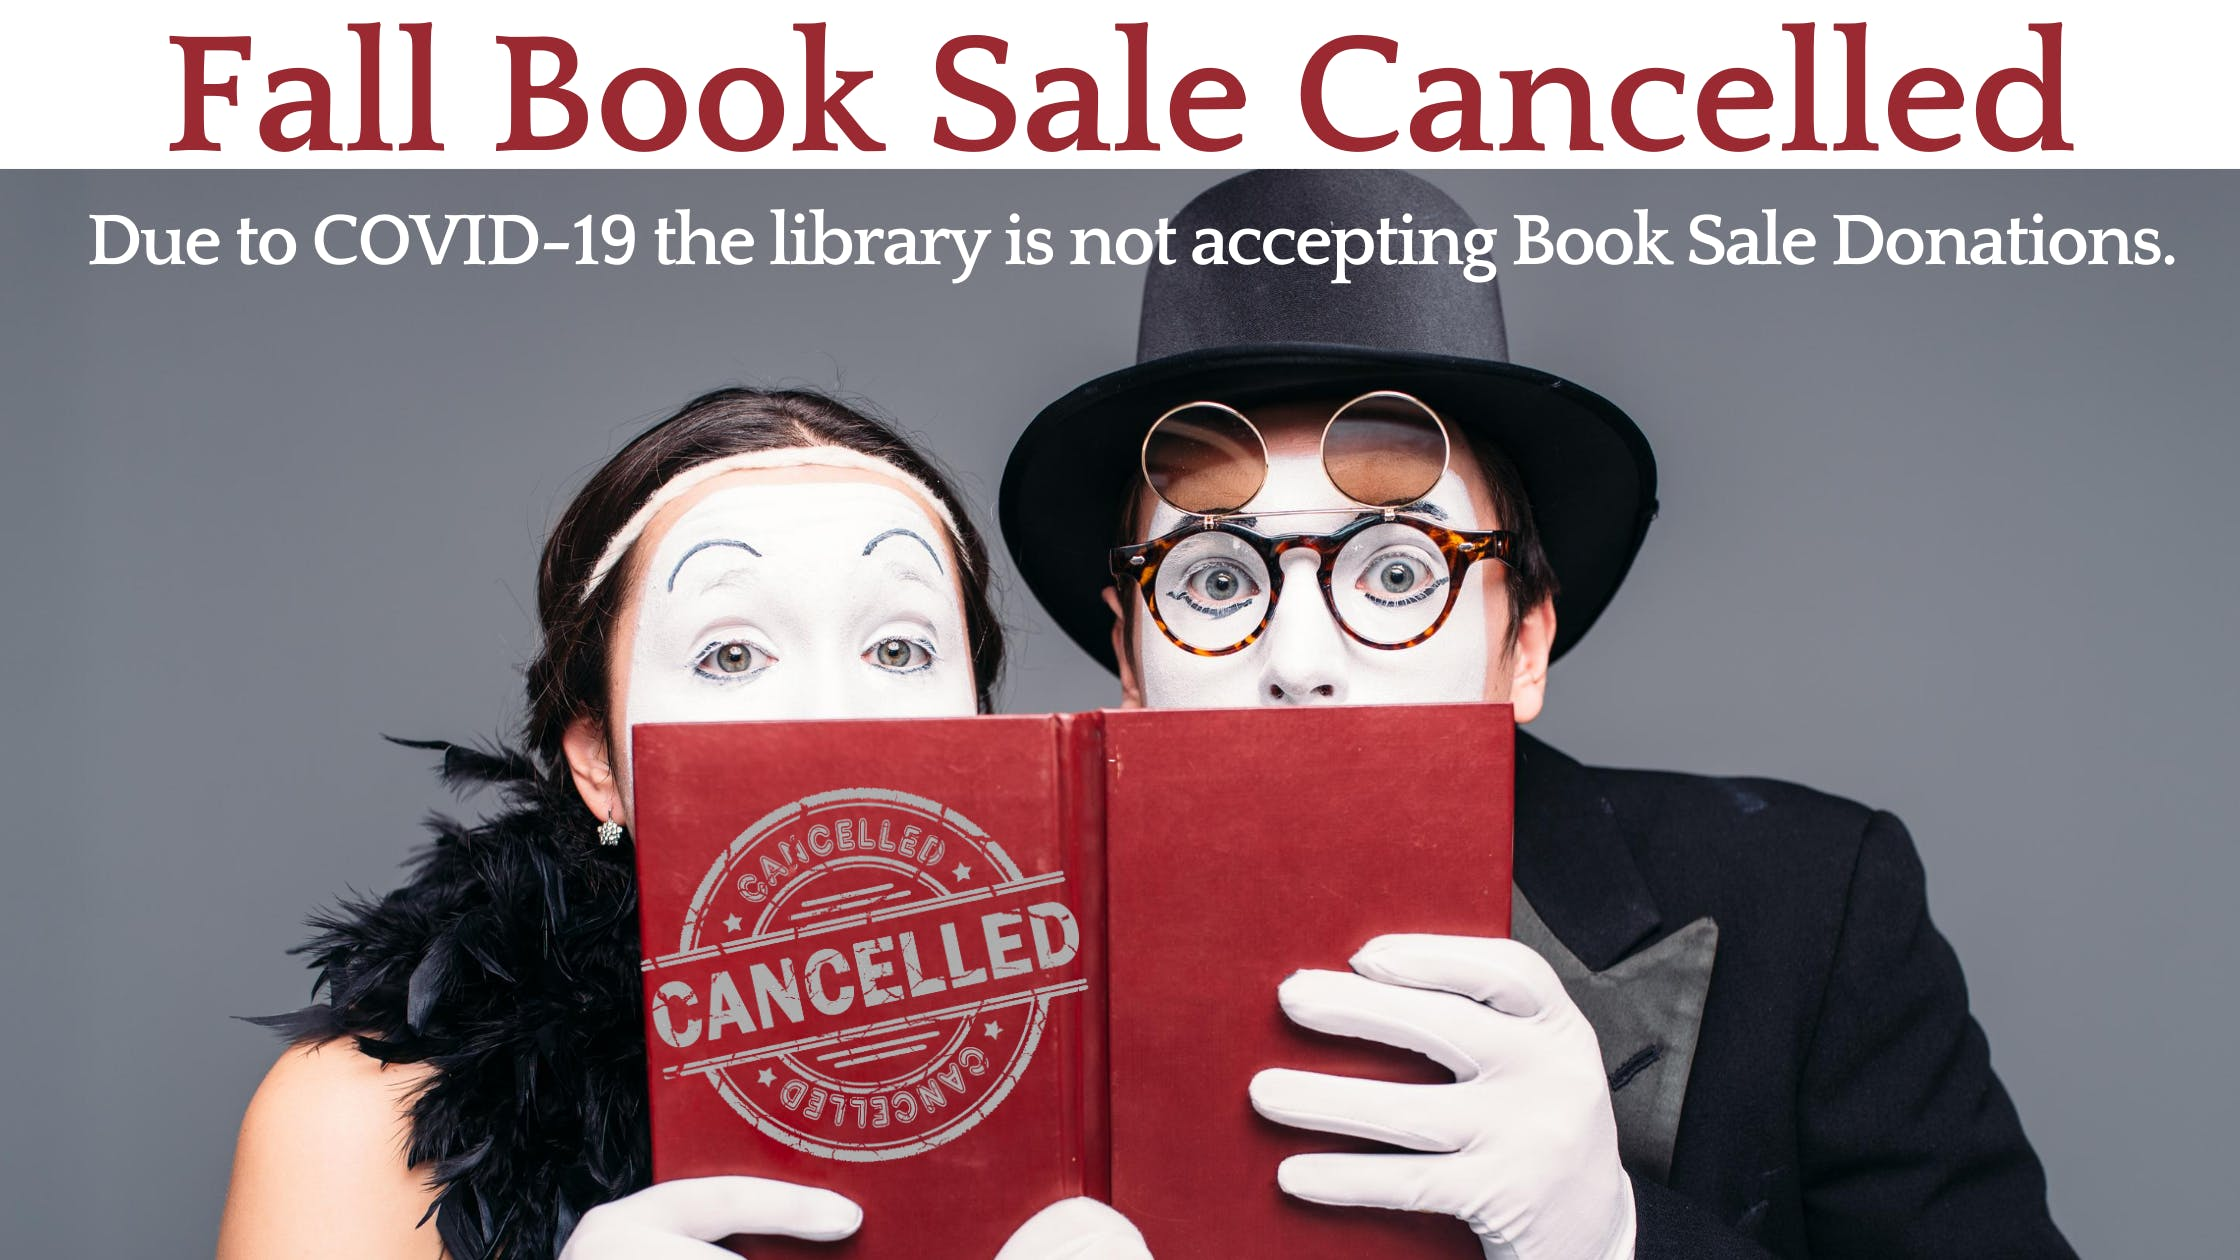 Fall Book Sale Cancelled